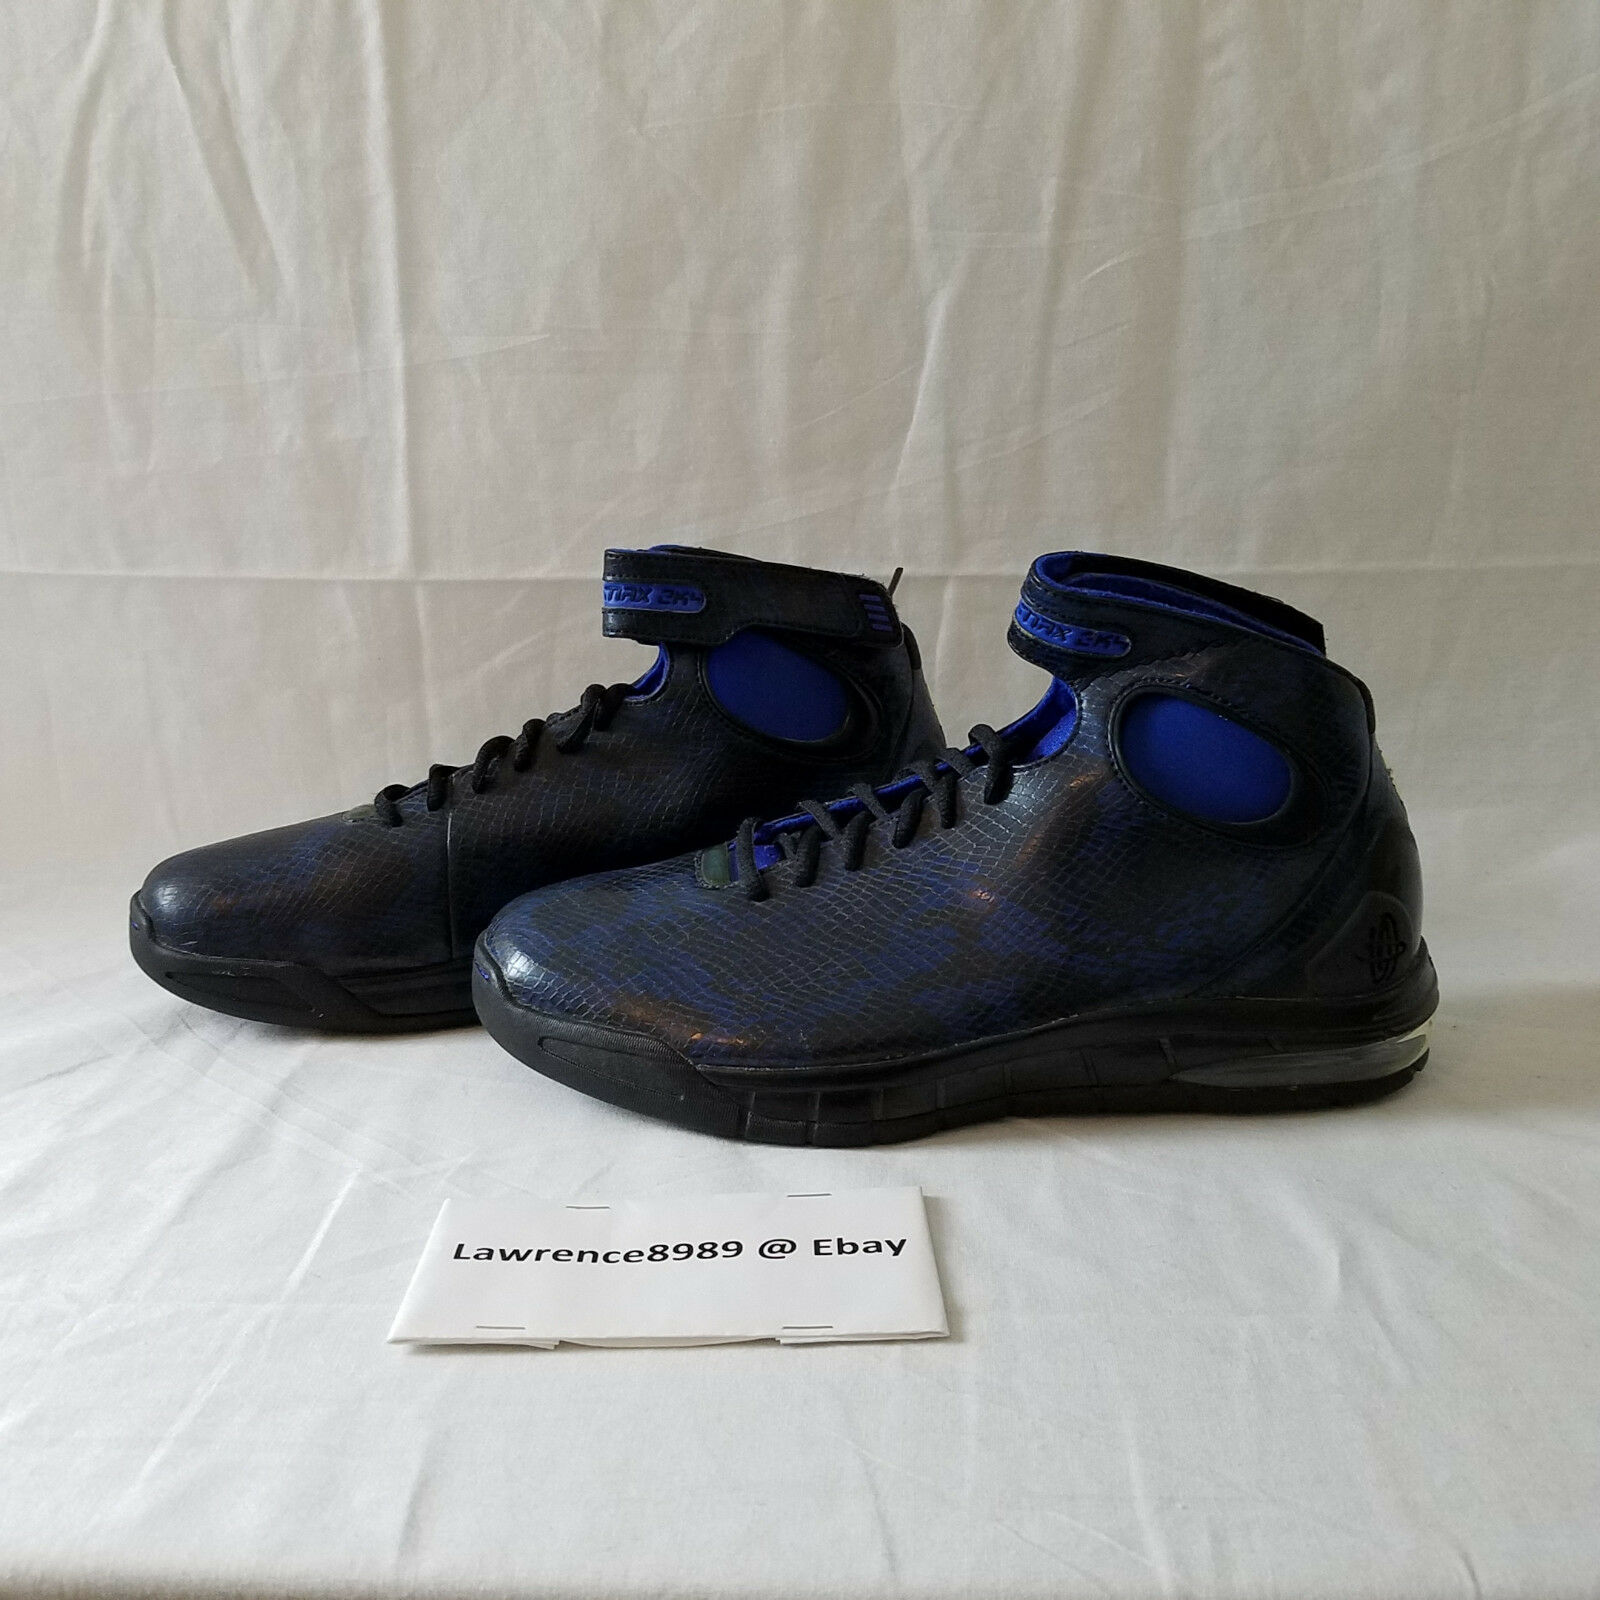 RARE DS Nike Zoom Air Huarache 2k4 Snakeskin Royal bluee Black 312544-401 US10.5